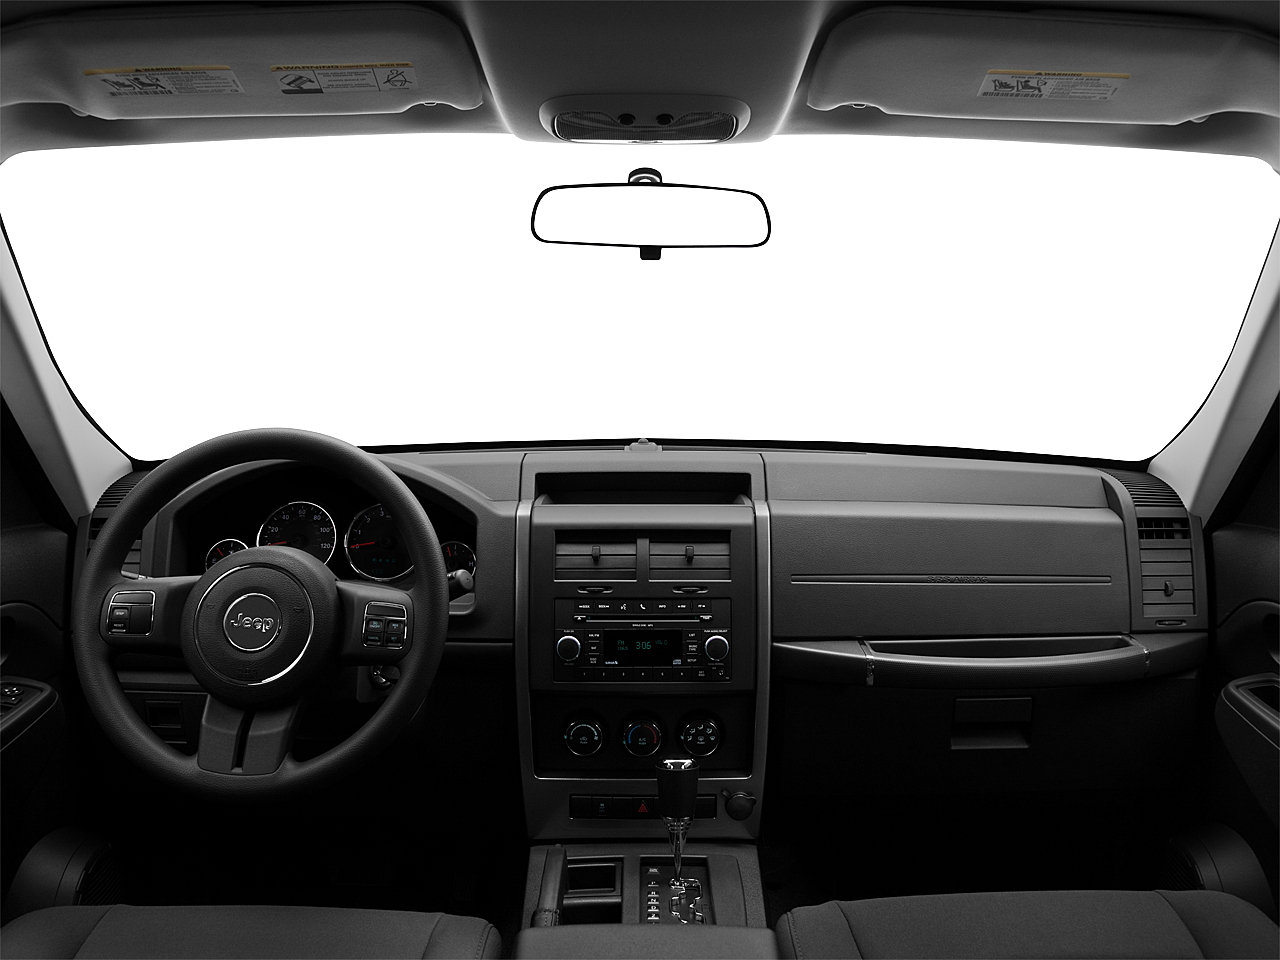 2011 Jeep Liberty Sport, centered wide dash shot